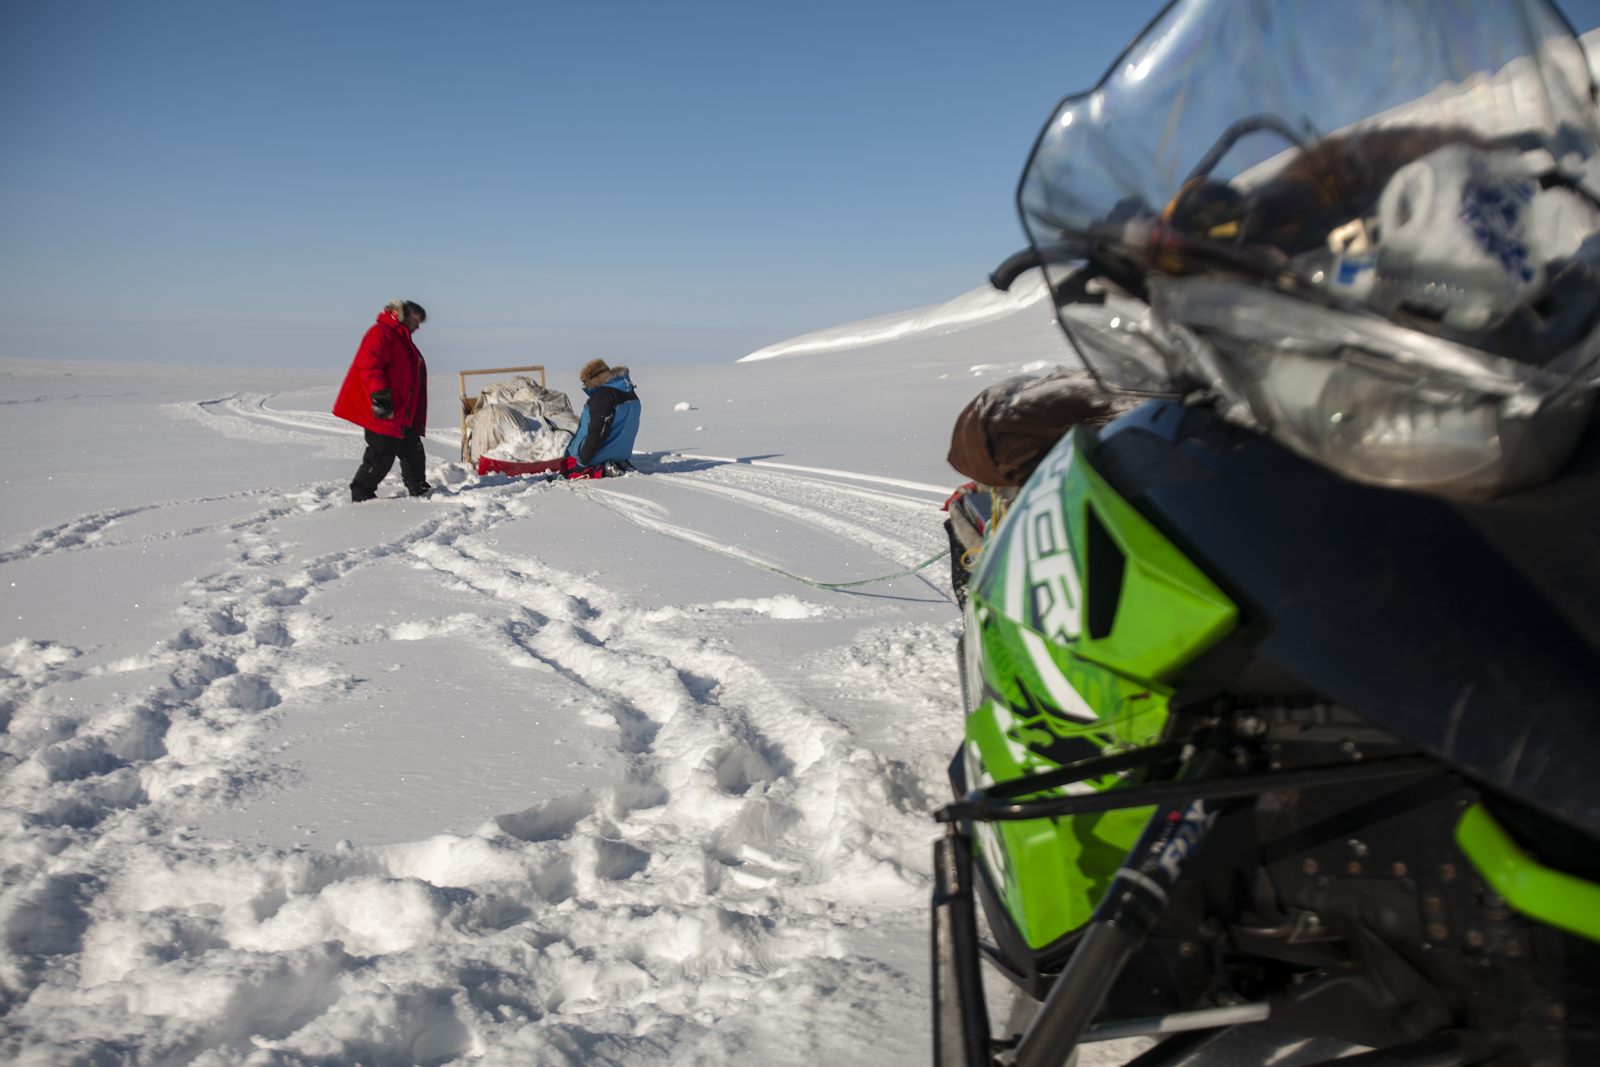 Craig and Charly adjust the tow line for one of the sleds carrying food and gear.